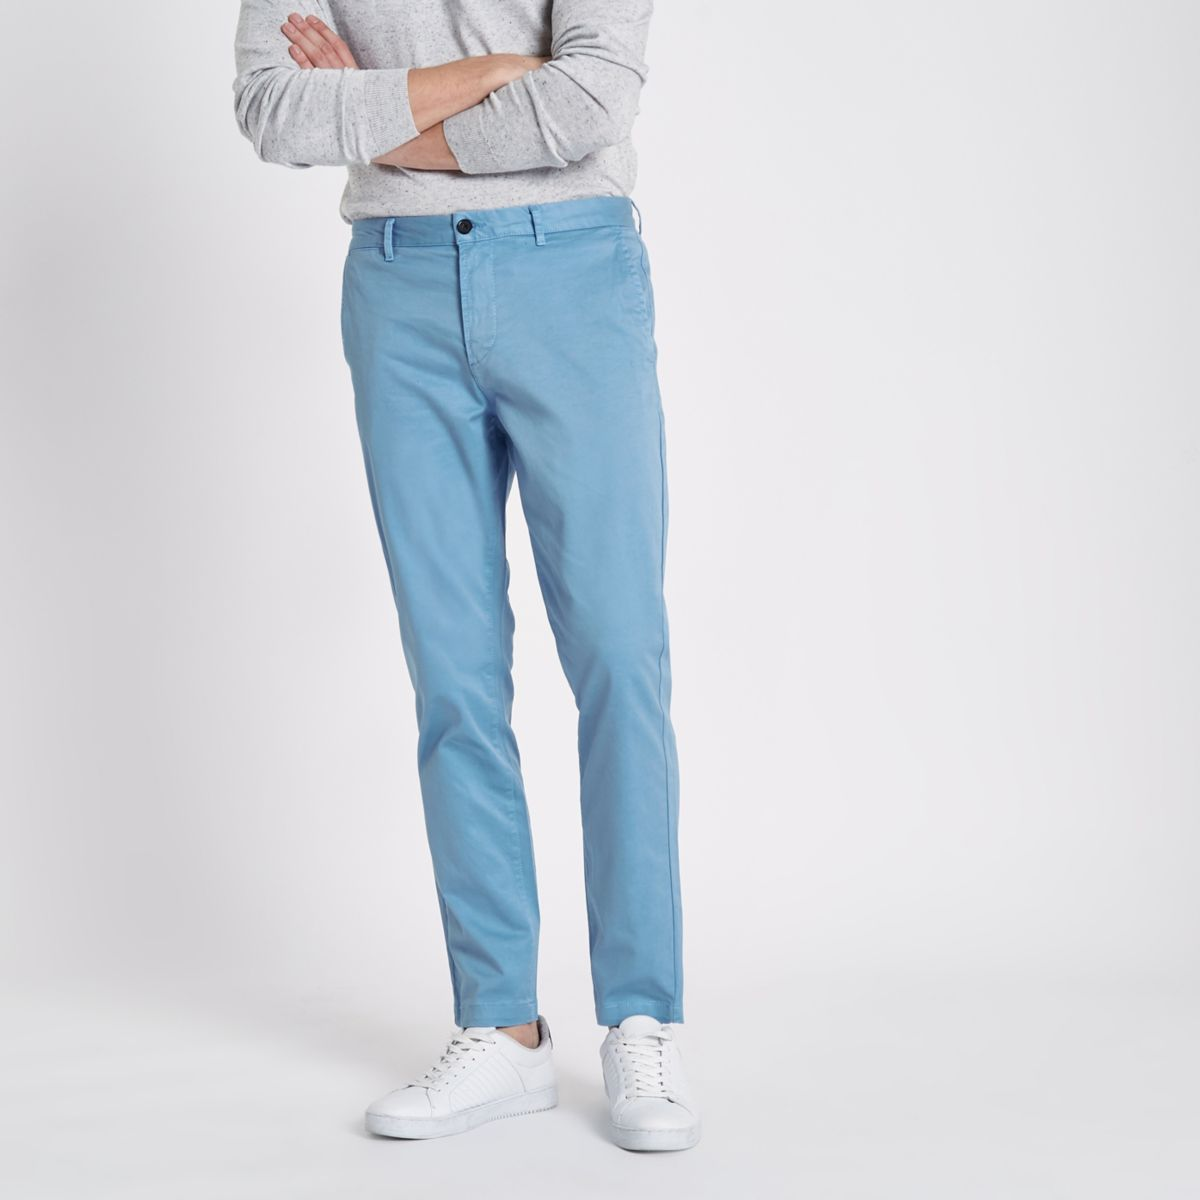 Light blue slim fit chino pants